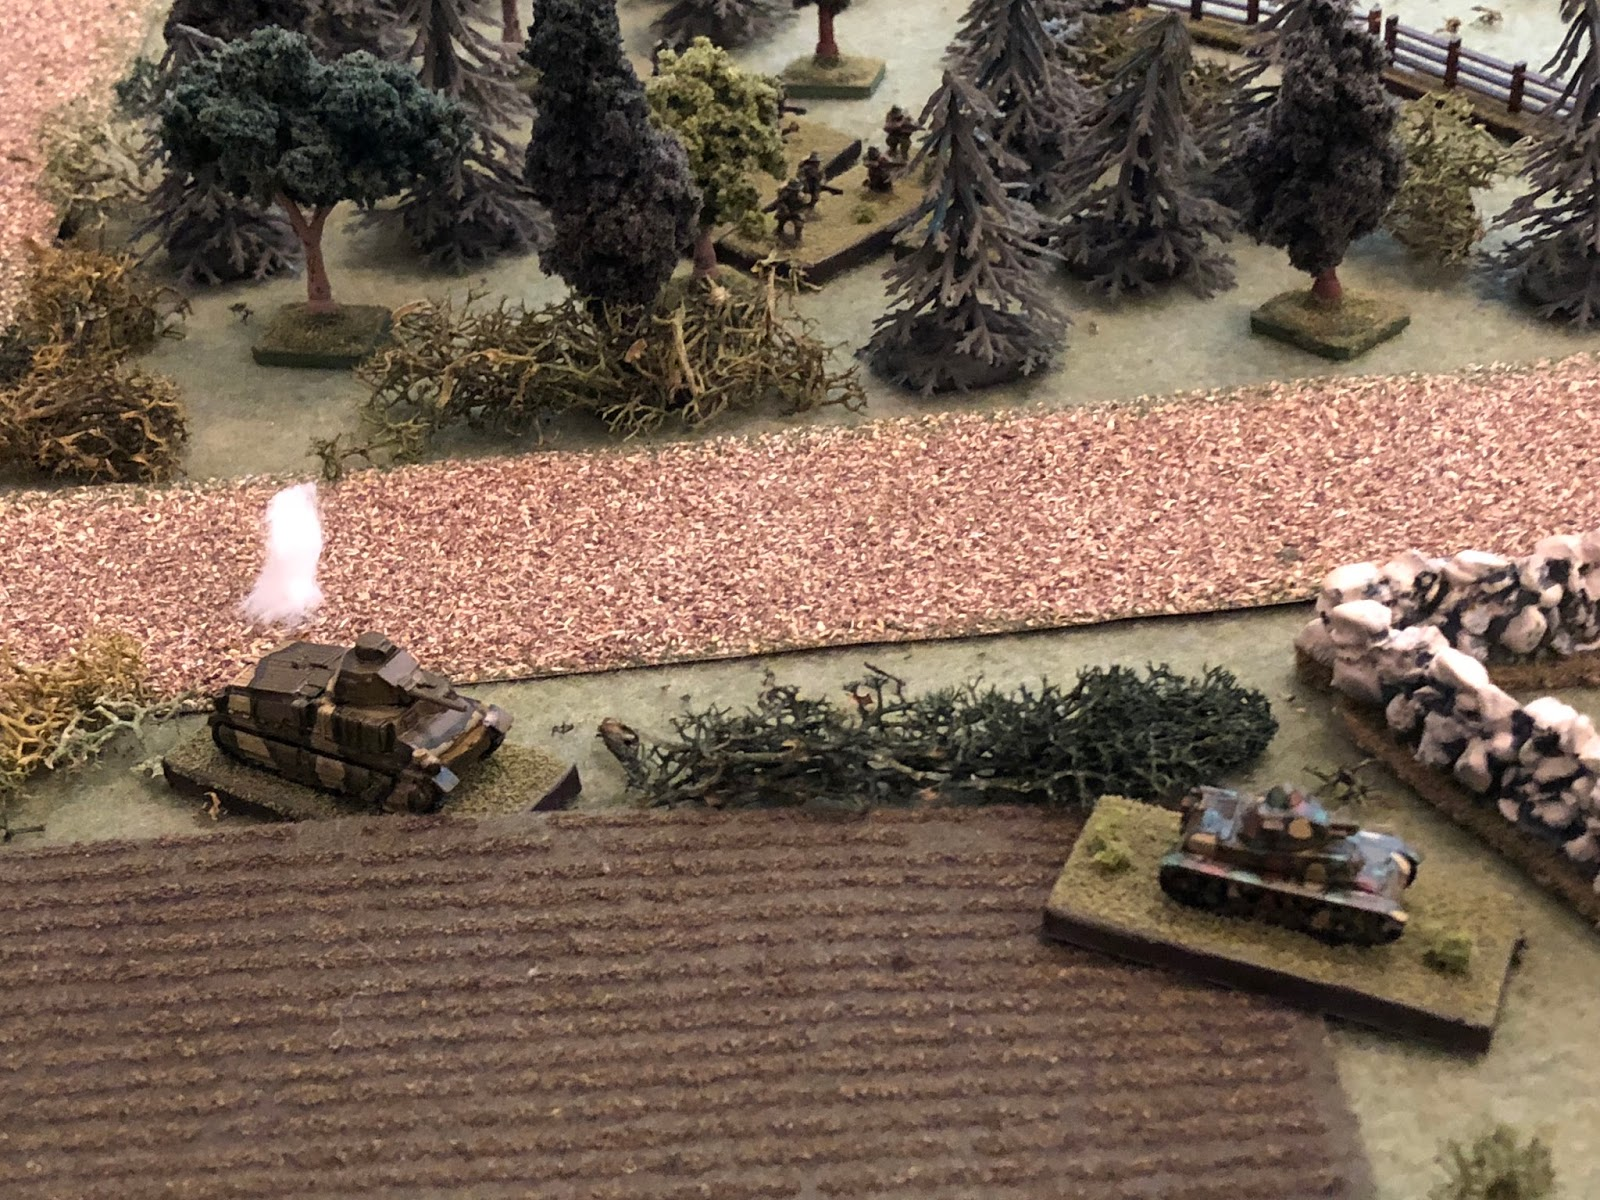 Just missing the southern Somua (left)...  The H39 commander (bottom right) looks on anxiously, and the French 2nd Platoon (top center) decides it's maybe not so bad being totally ensconced in the woods.